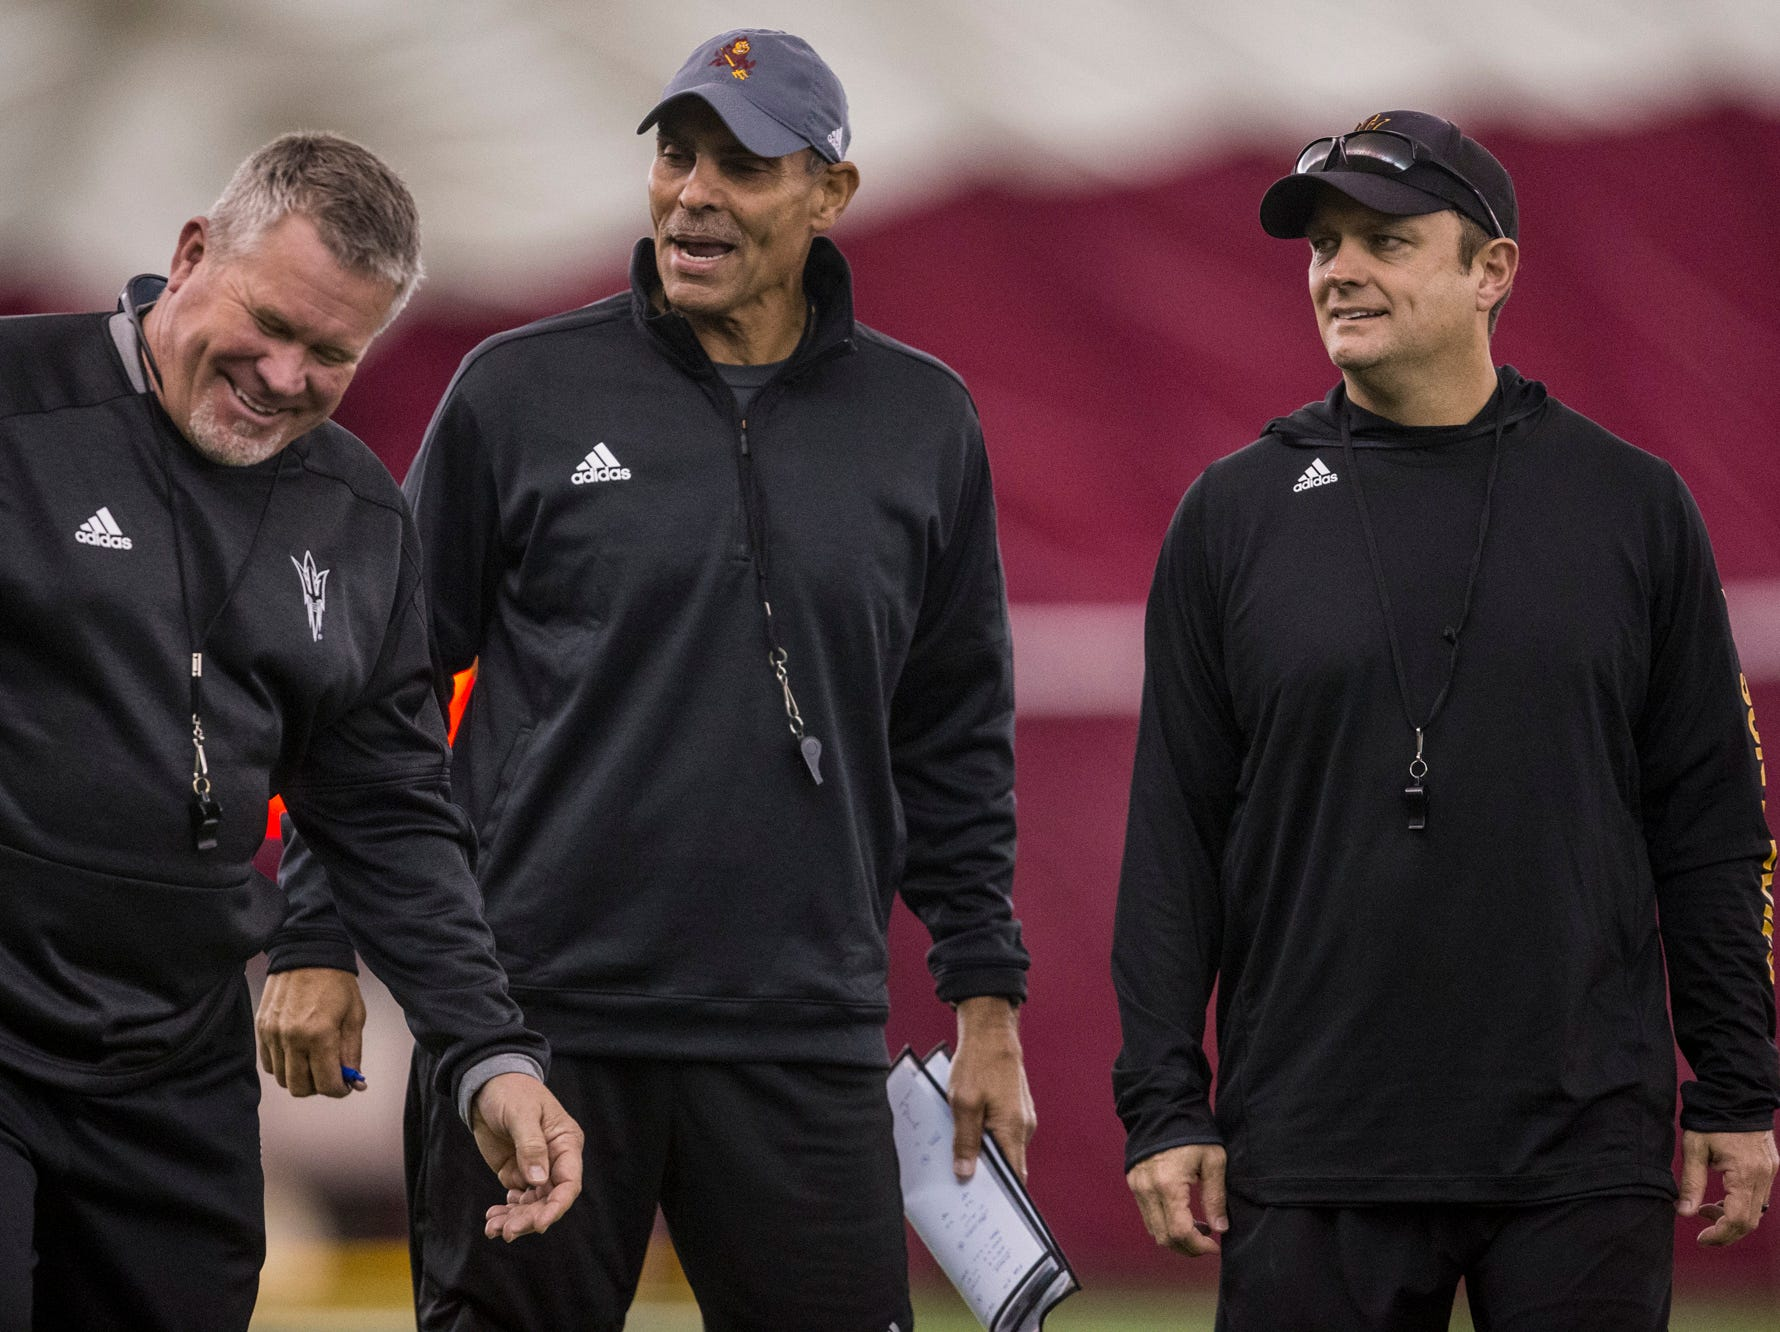 Head coach Herm Edwards talks with special teams coordinator Shawn Slocum (left) and defensive coordinator Danny Gonzales (right) during practice on Tuesday, Feb. 5, 2019, at the Verde Dickey Dome in Tempe, Ariz.